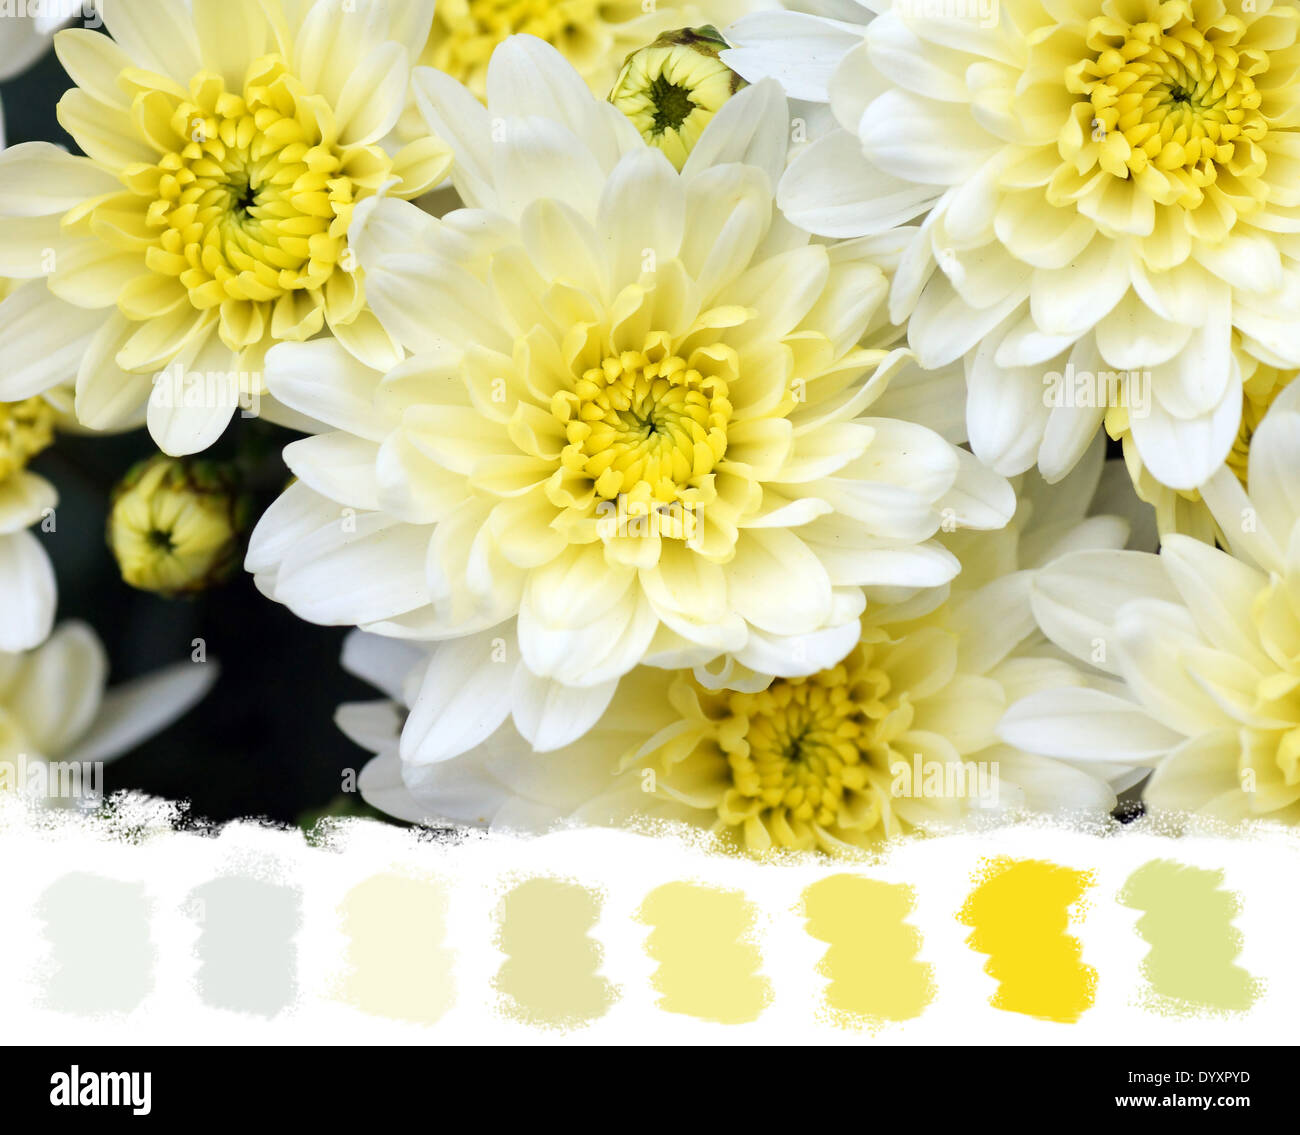 White and yellow mums flowers beautiful and soft color palette white and yellow mums flowers beautiful and soft color palette mightylinksfo